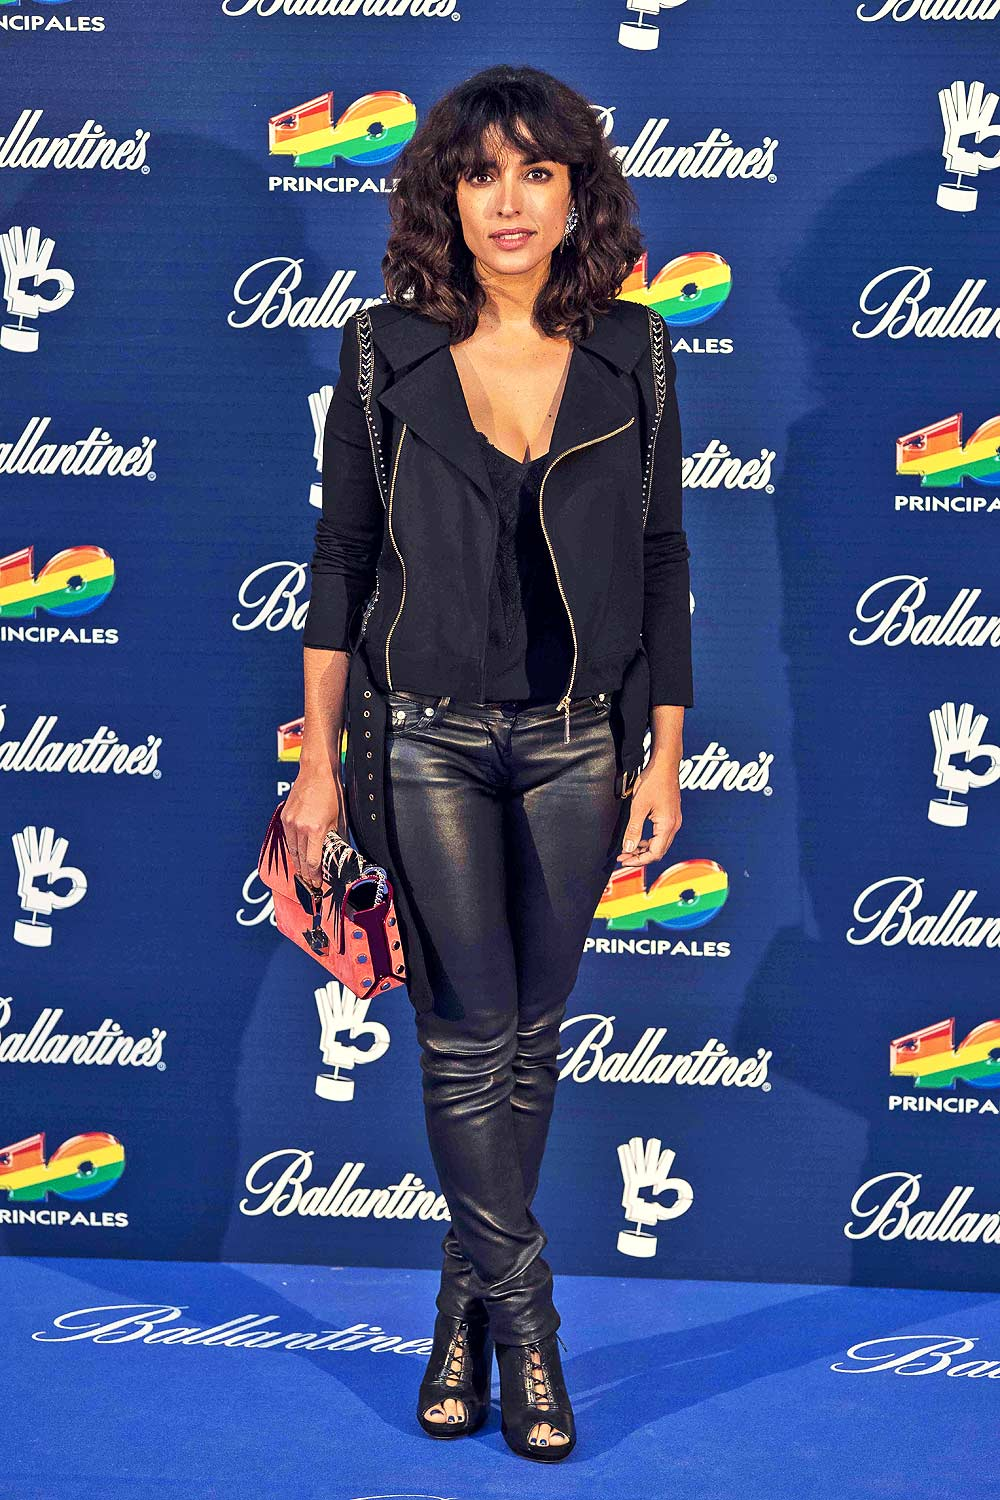 Inma Cuesta attends 40 Principales Awards 2015